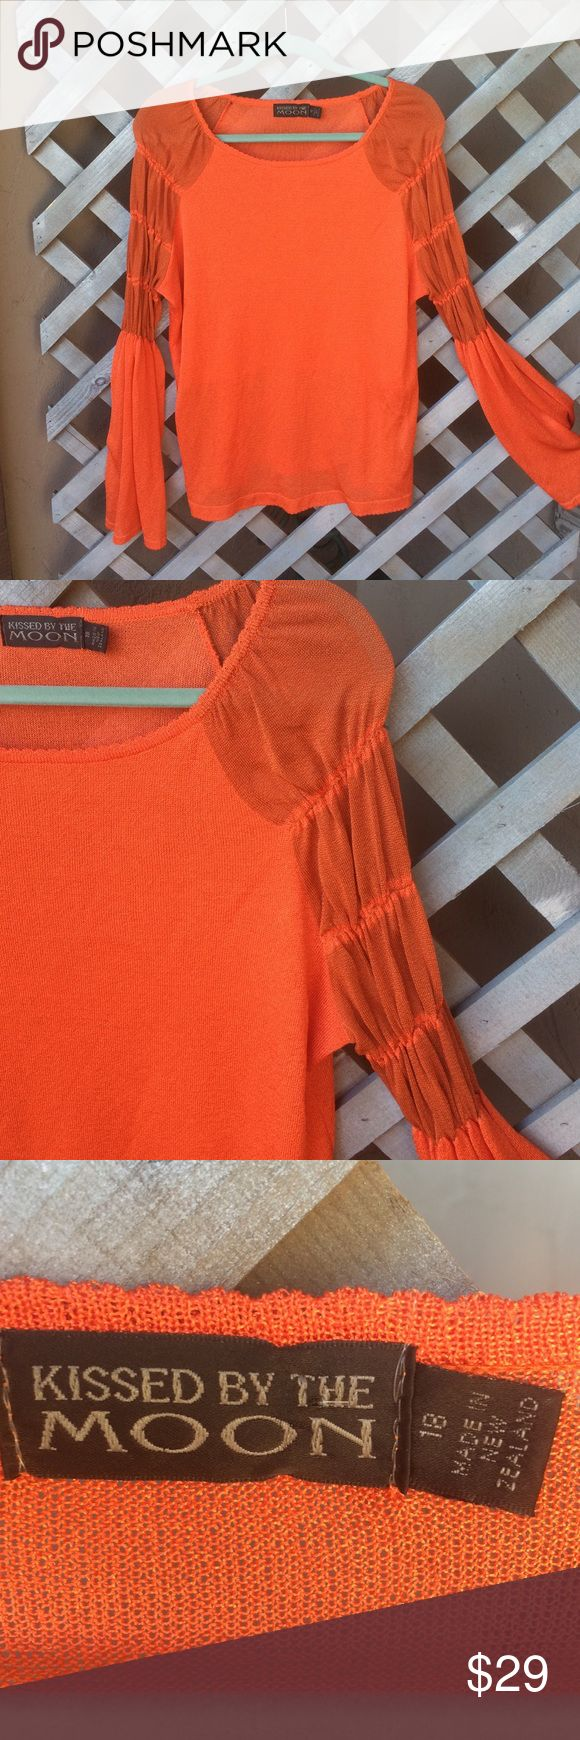 VIBRANT ORANGE LONG SLEEVE TOP! This unique TOP was purchased in New Zealand! RAYON/POLYAMIDE&CELLULOSE make this top COMFY and STRETCHY! Pretty sleeves! Bra lining! SOO PRETTY! In great condition! KISSED BY THE MOON Tops